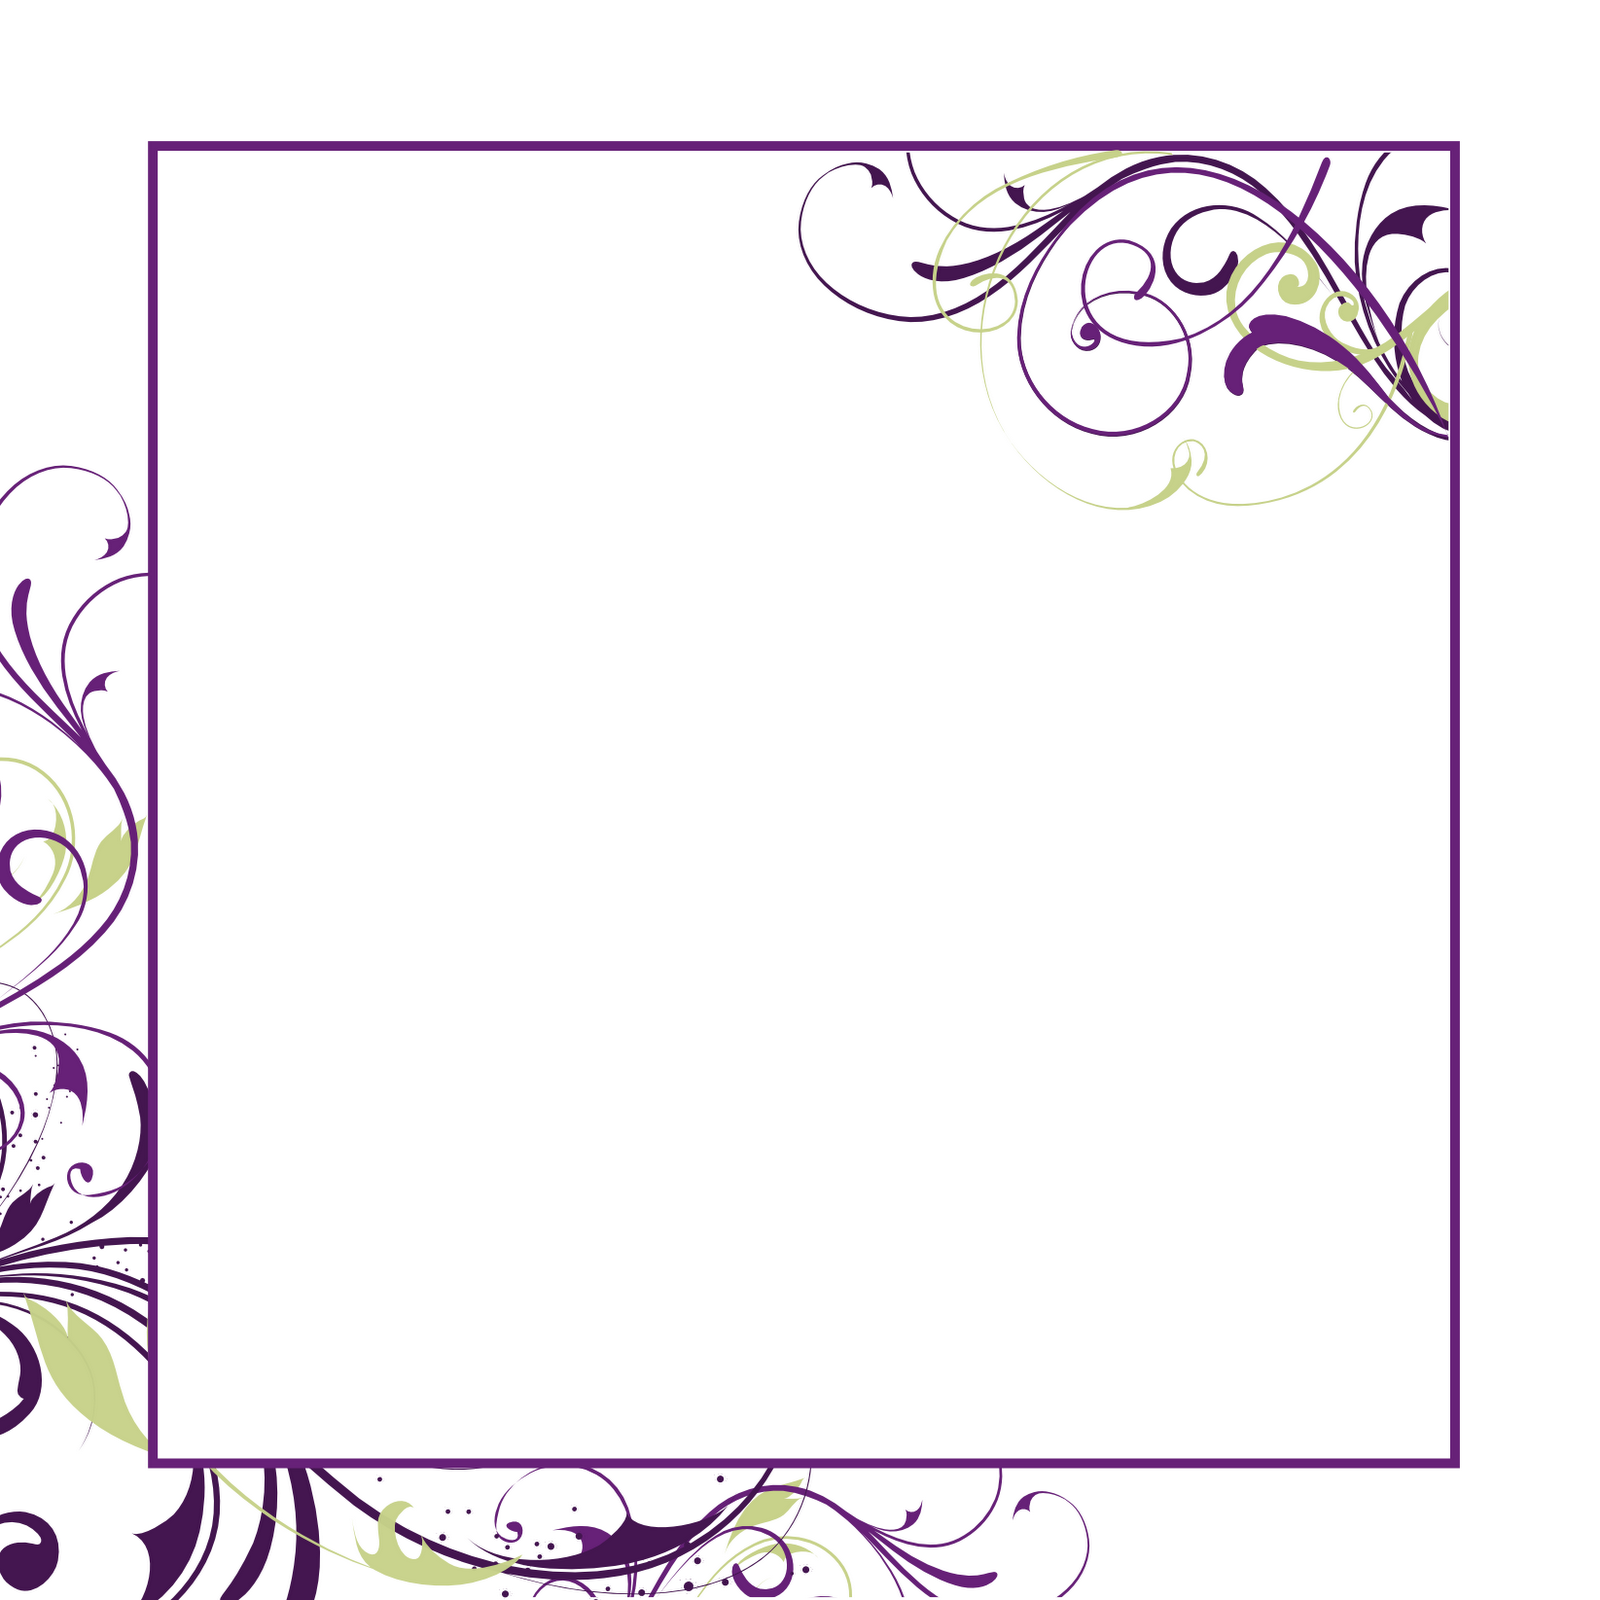 Image for Blank Invitations For Wedding | star student | Pinterest ...